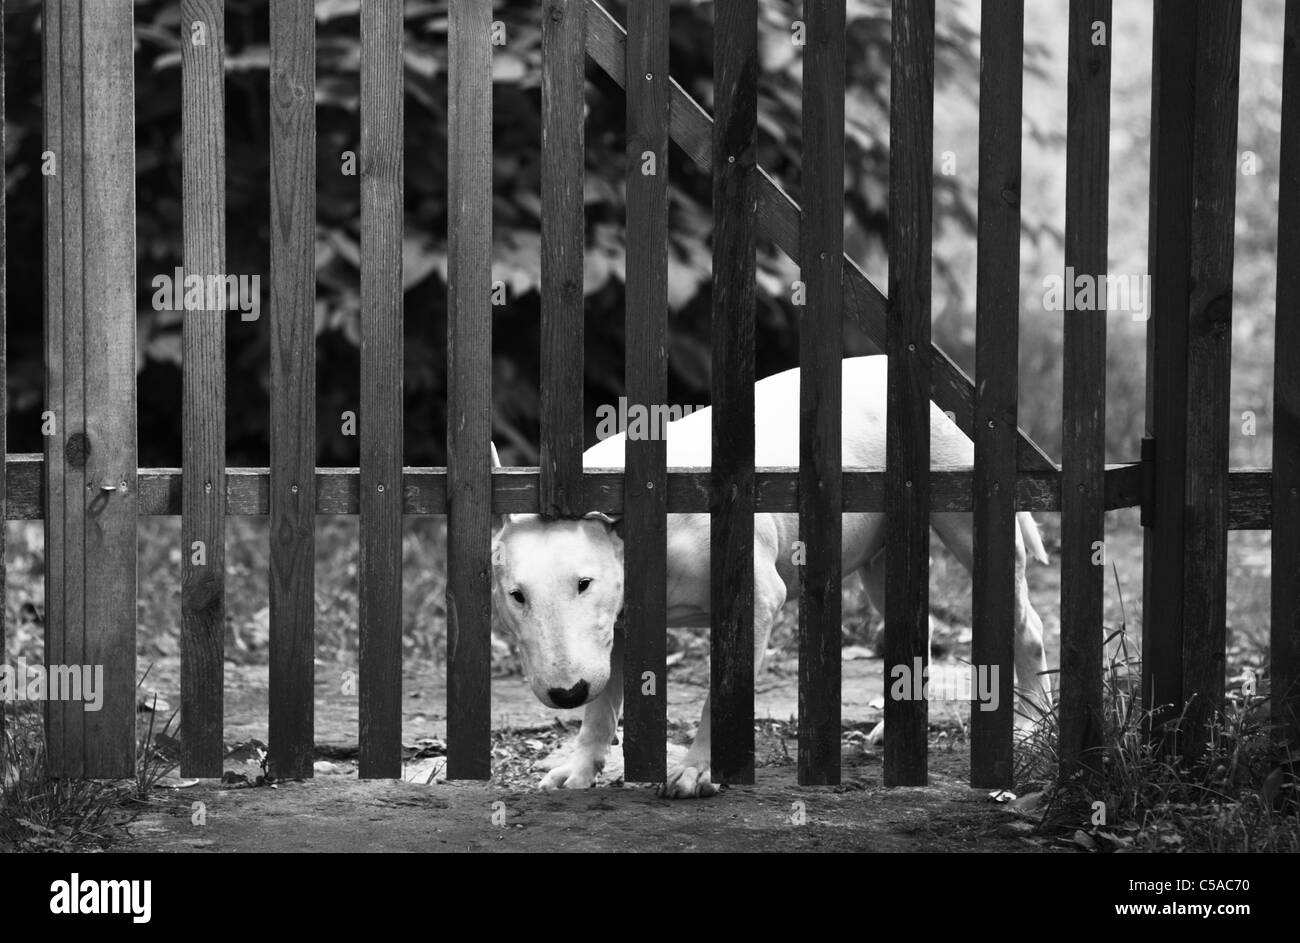 Bull terrier (Canis lupus f. familiaris) peeking through a gap in a wooden fence. - Stock Image